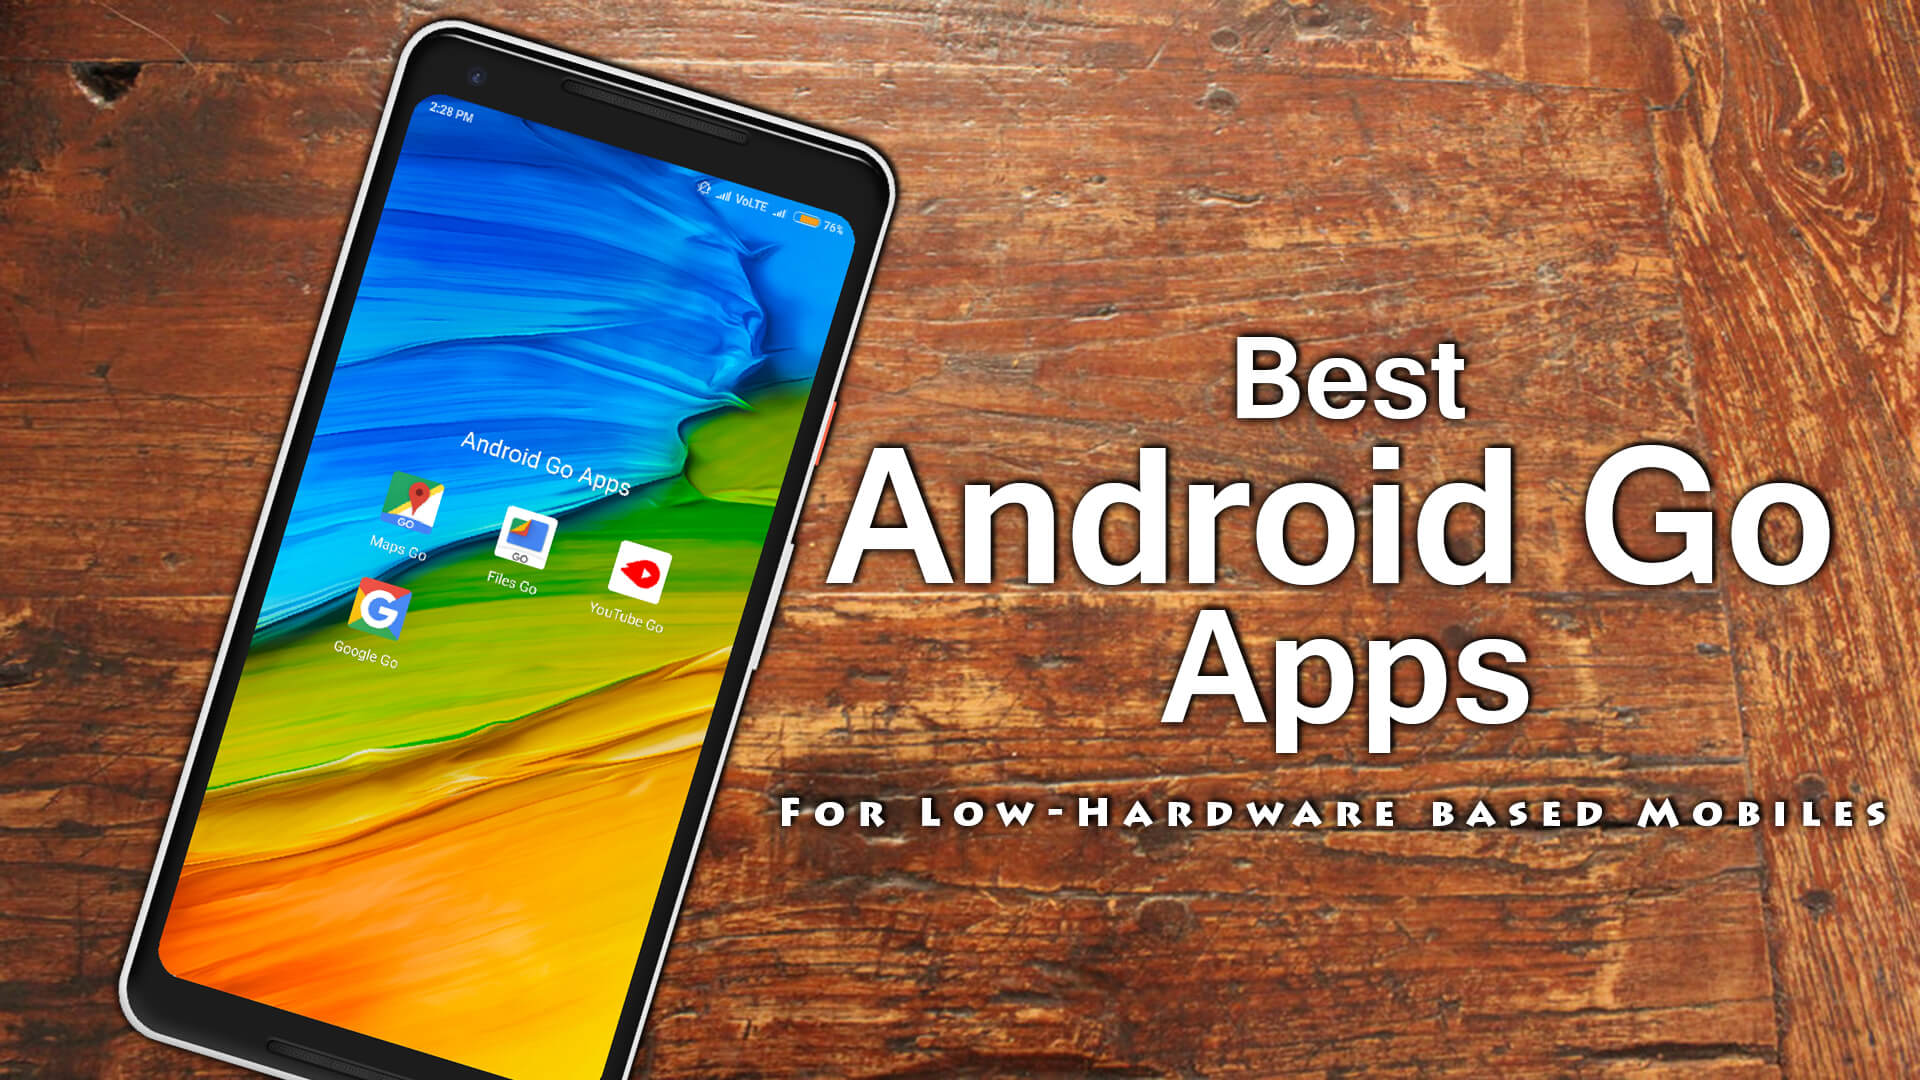 Best Android Go Apps